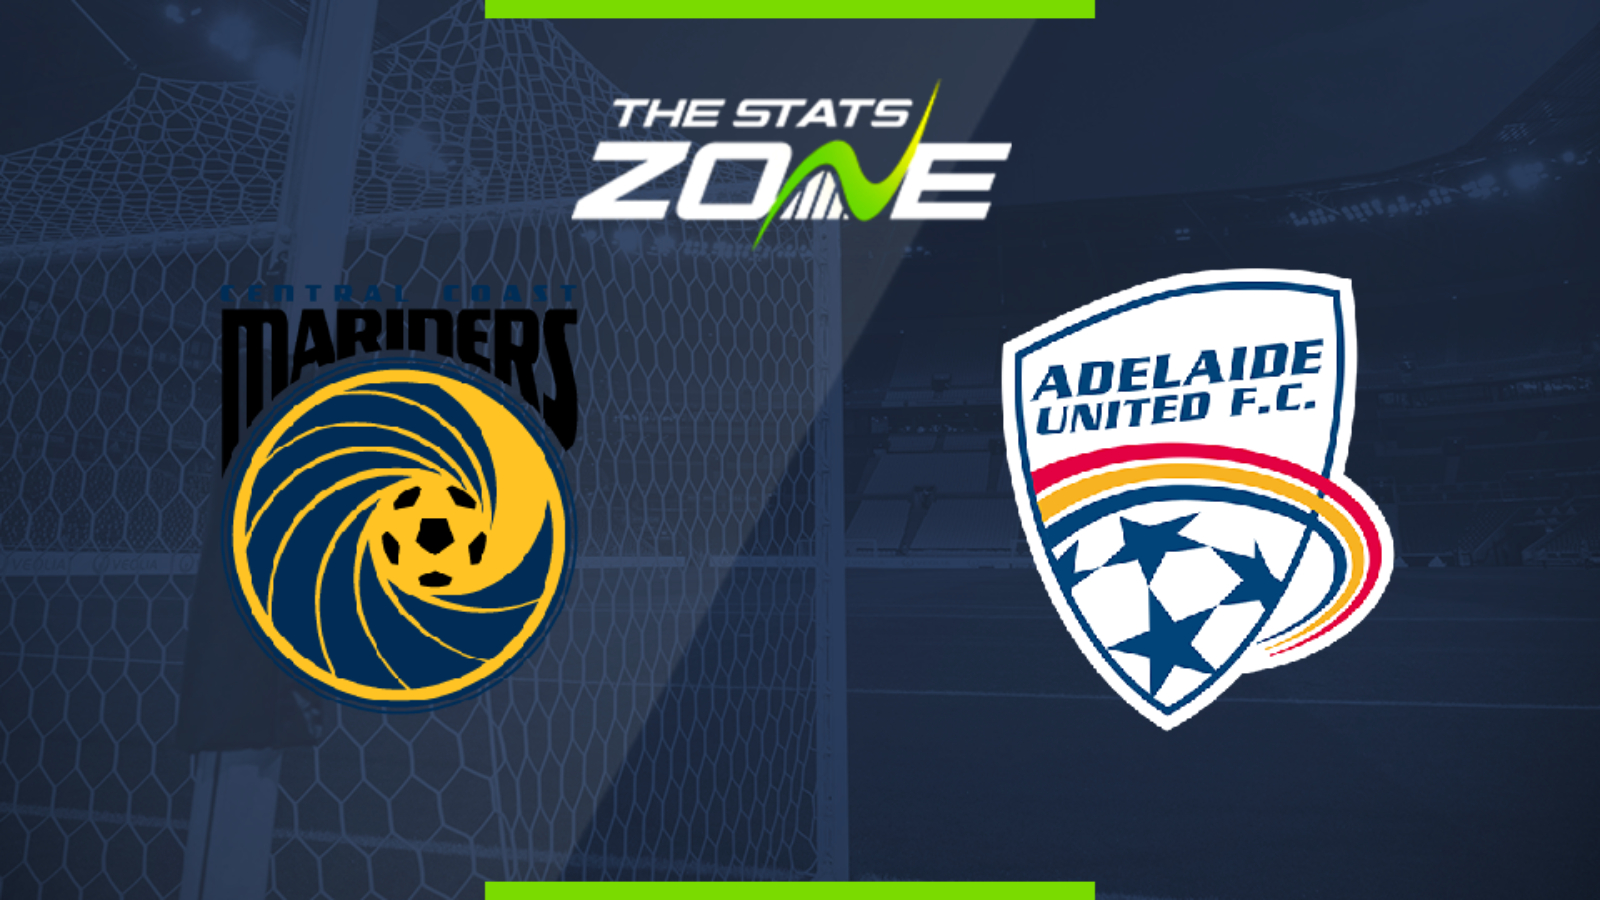 2019-20 A-League – Central Coast Mariners vs Adelaide United Preview & Prediction - The Stats Zone